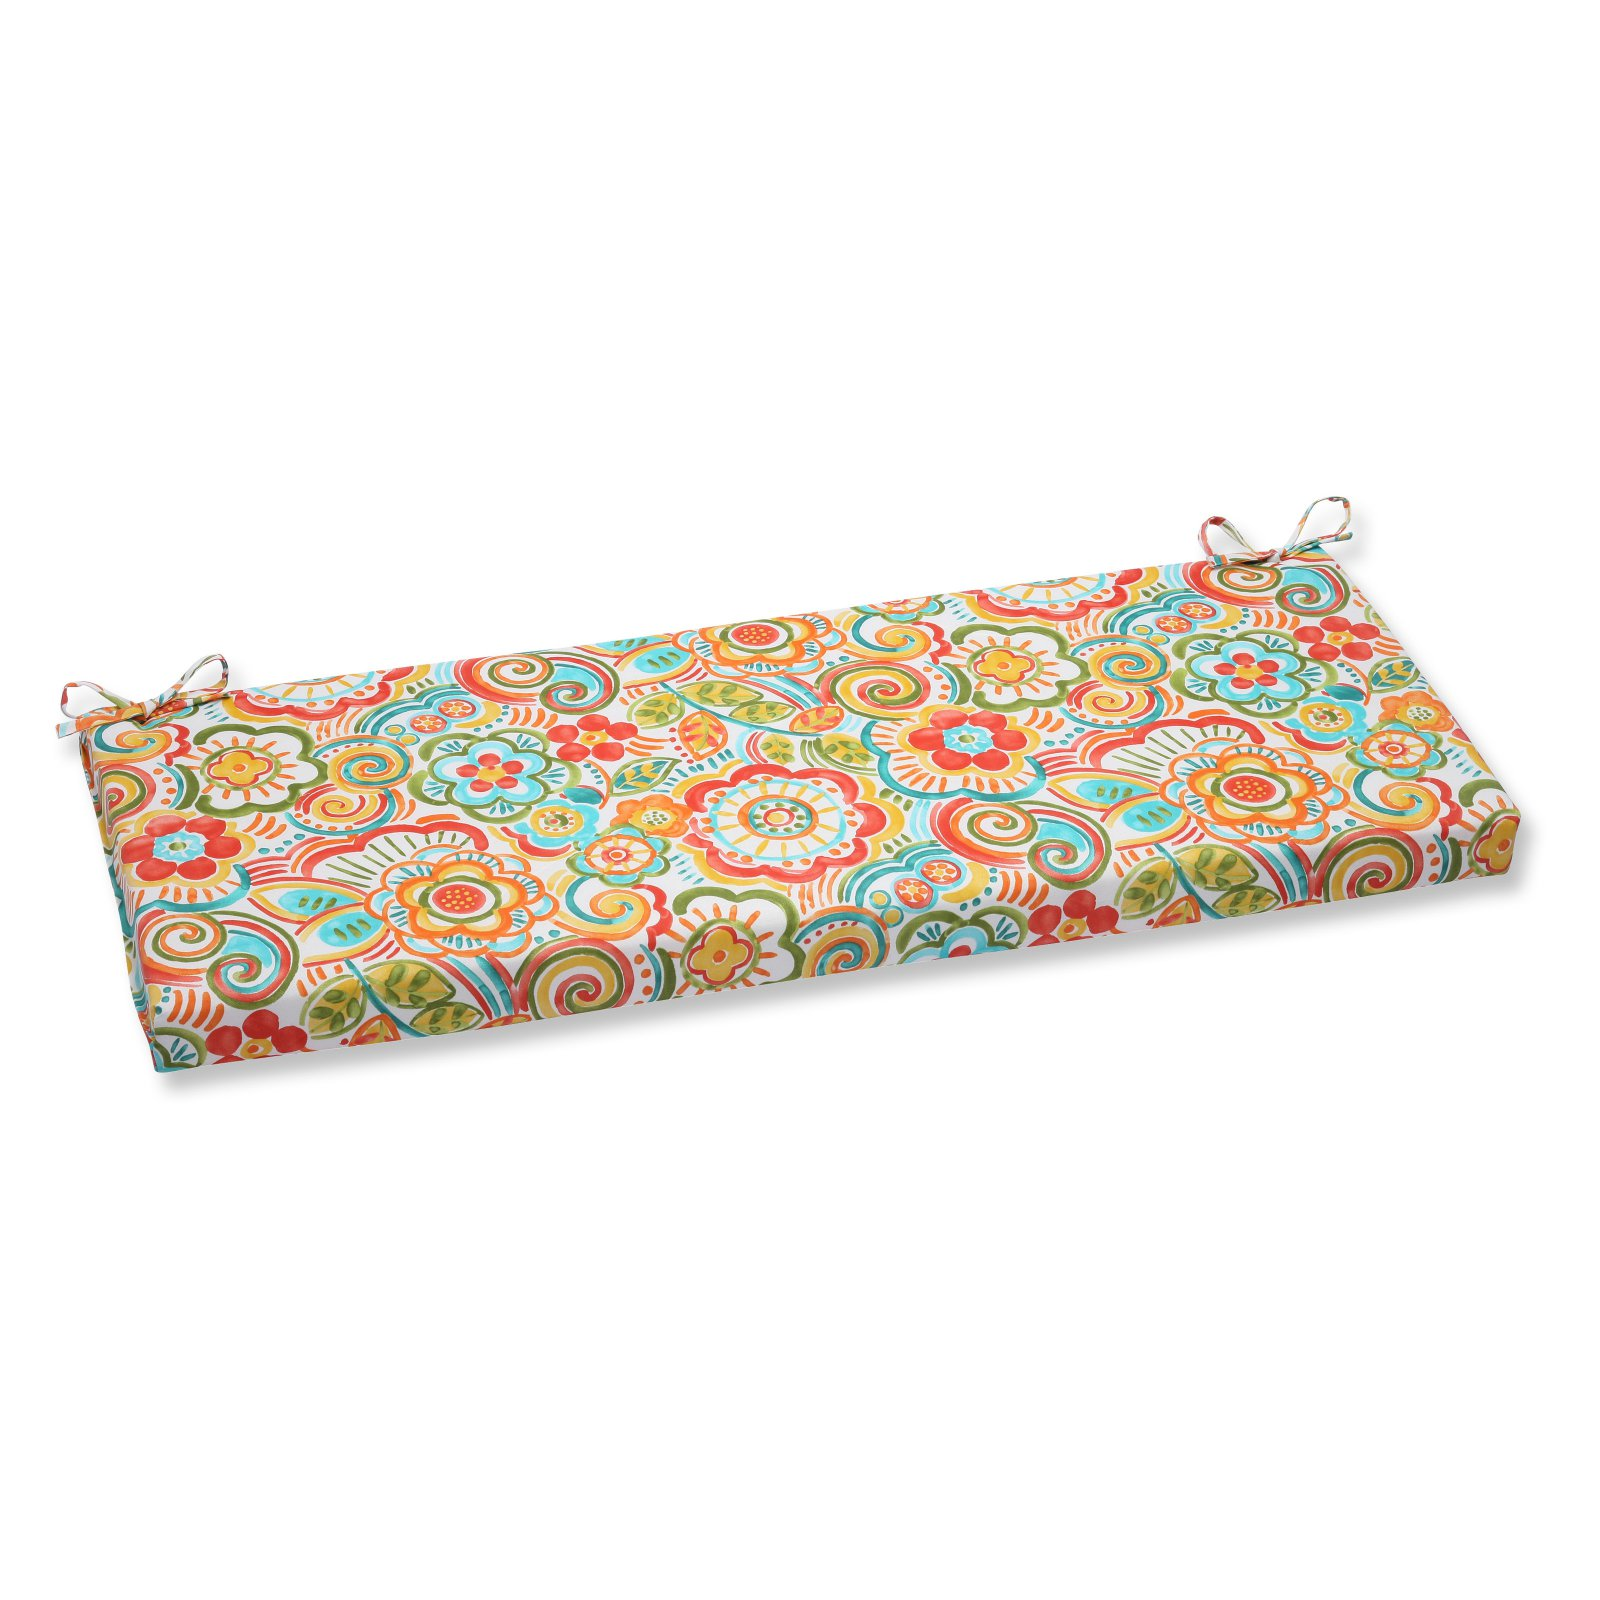 Pillow Perfect Outdoor/ Indoor Bronwood Caribbean Bench Cushion